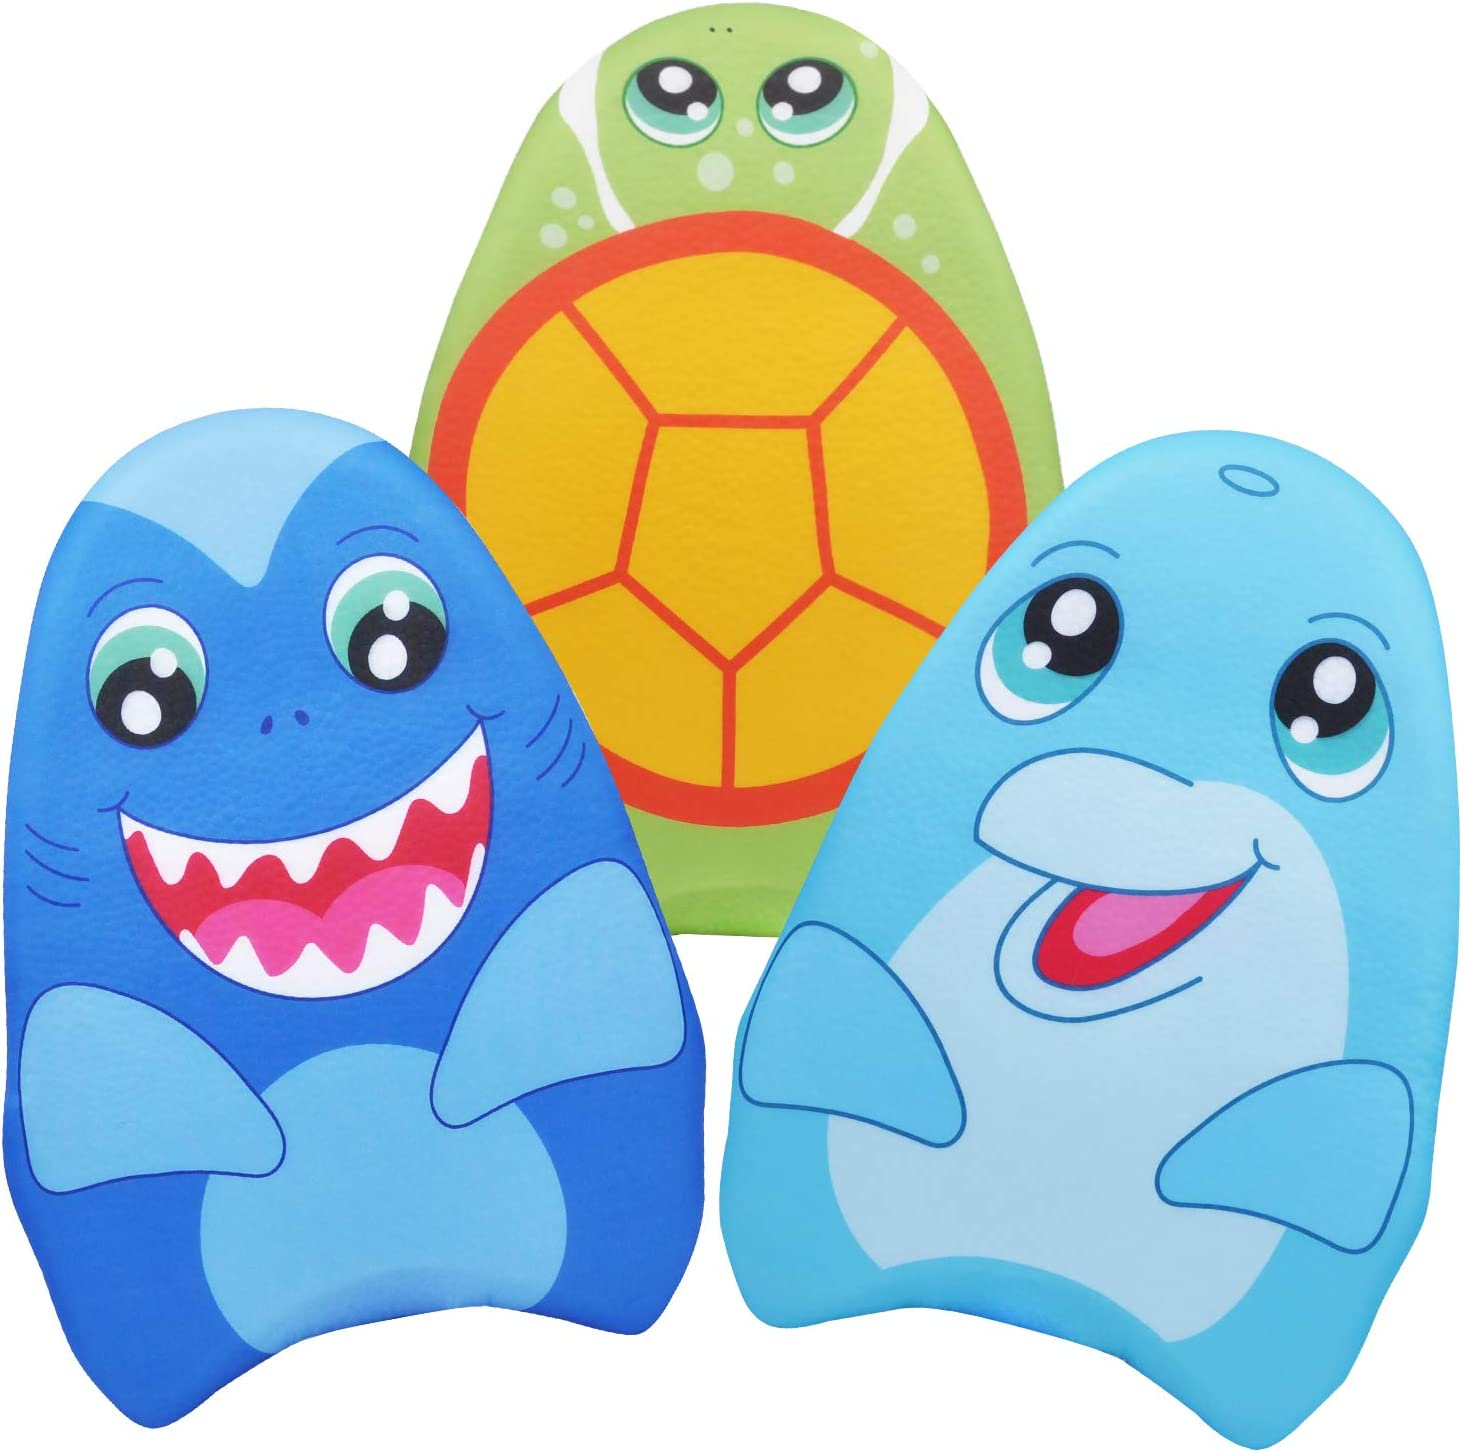 JOYIN Learn-to-Swim Kickboard Shark, Dolphin, Sea Turtle for Kids Summer Fun, Party Favor, Summer Swim Time, Pool Toys, Classroom Prices